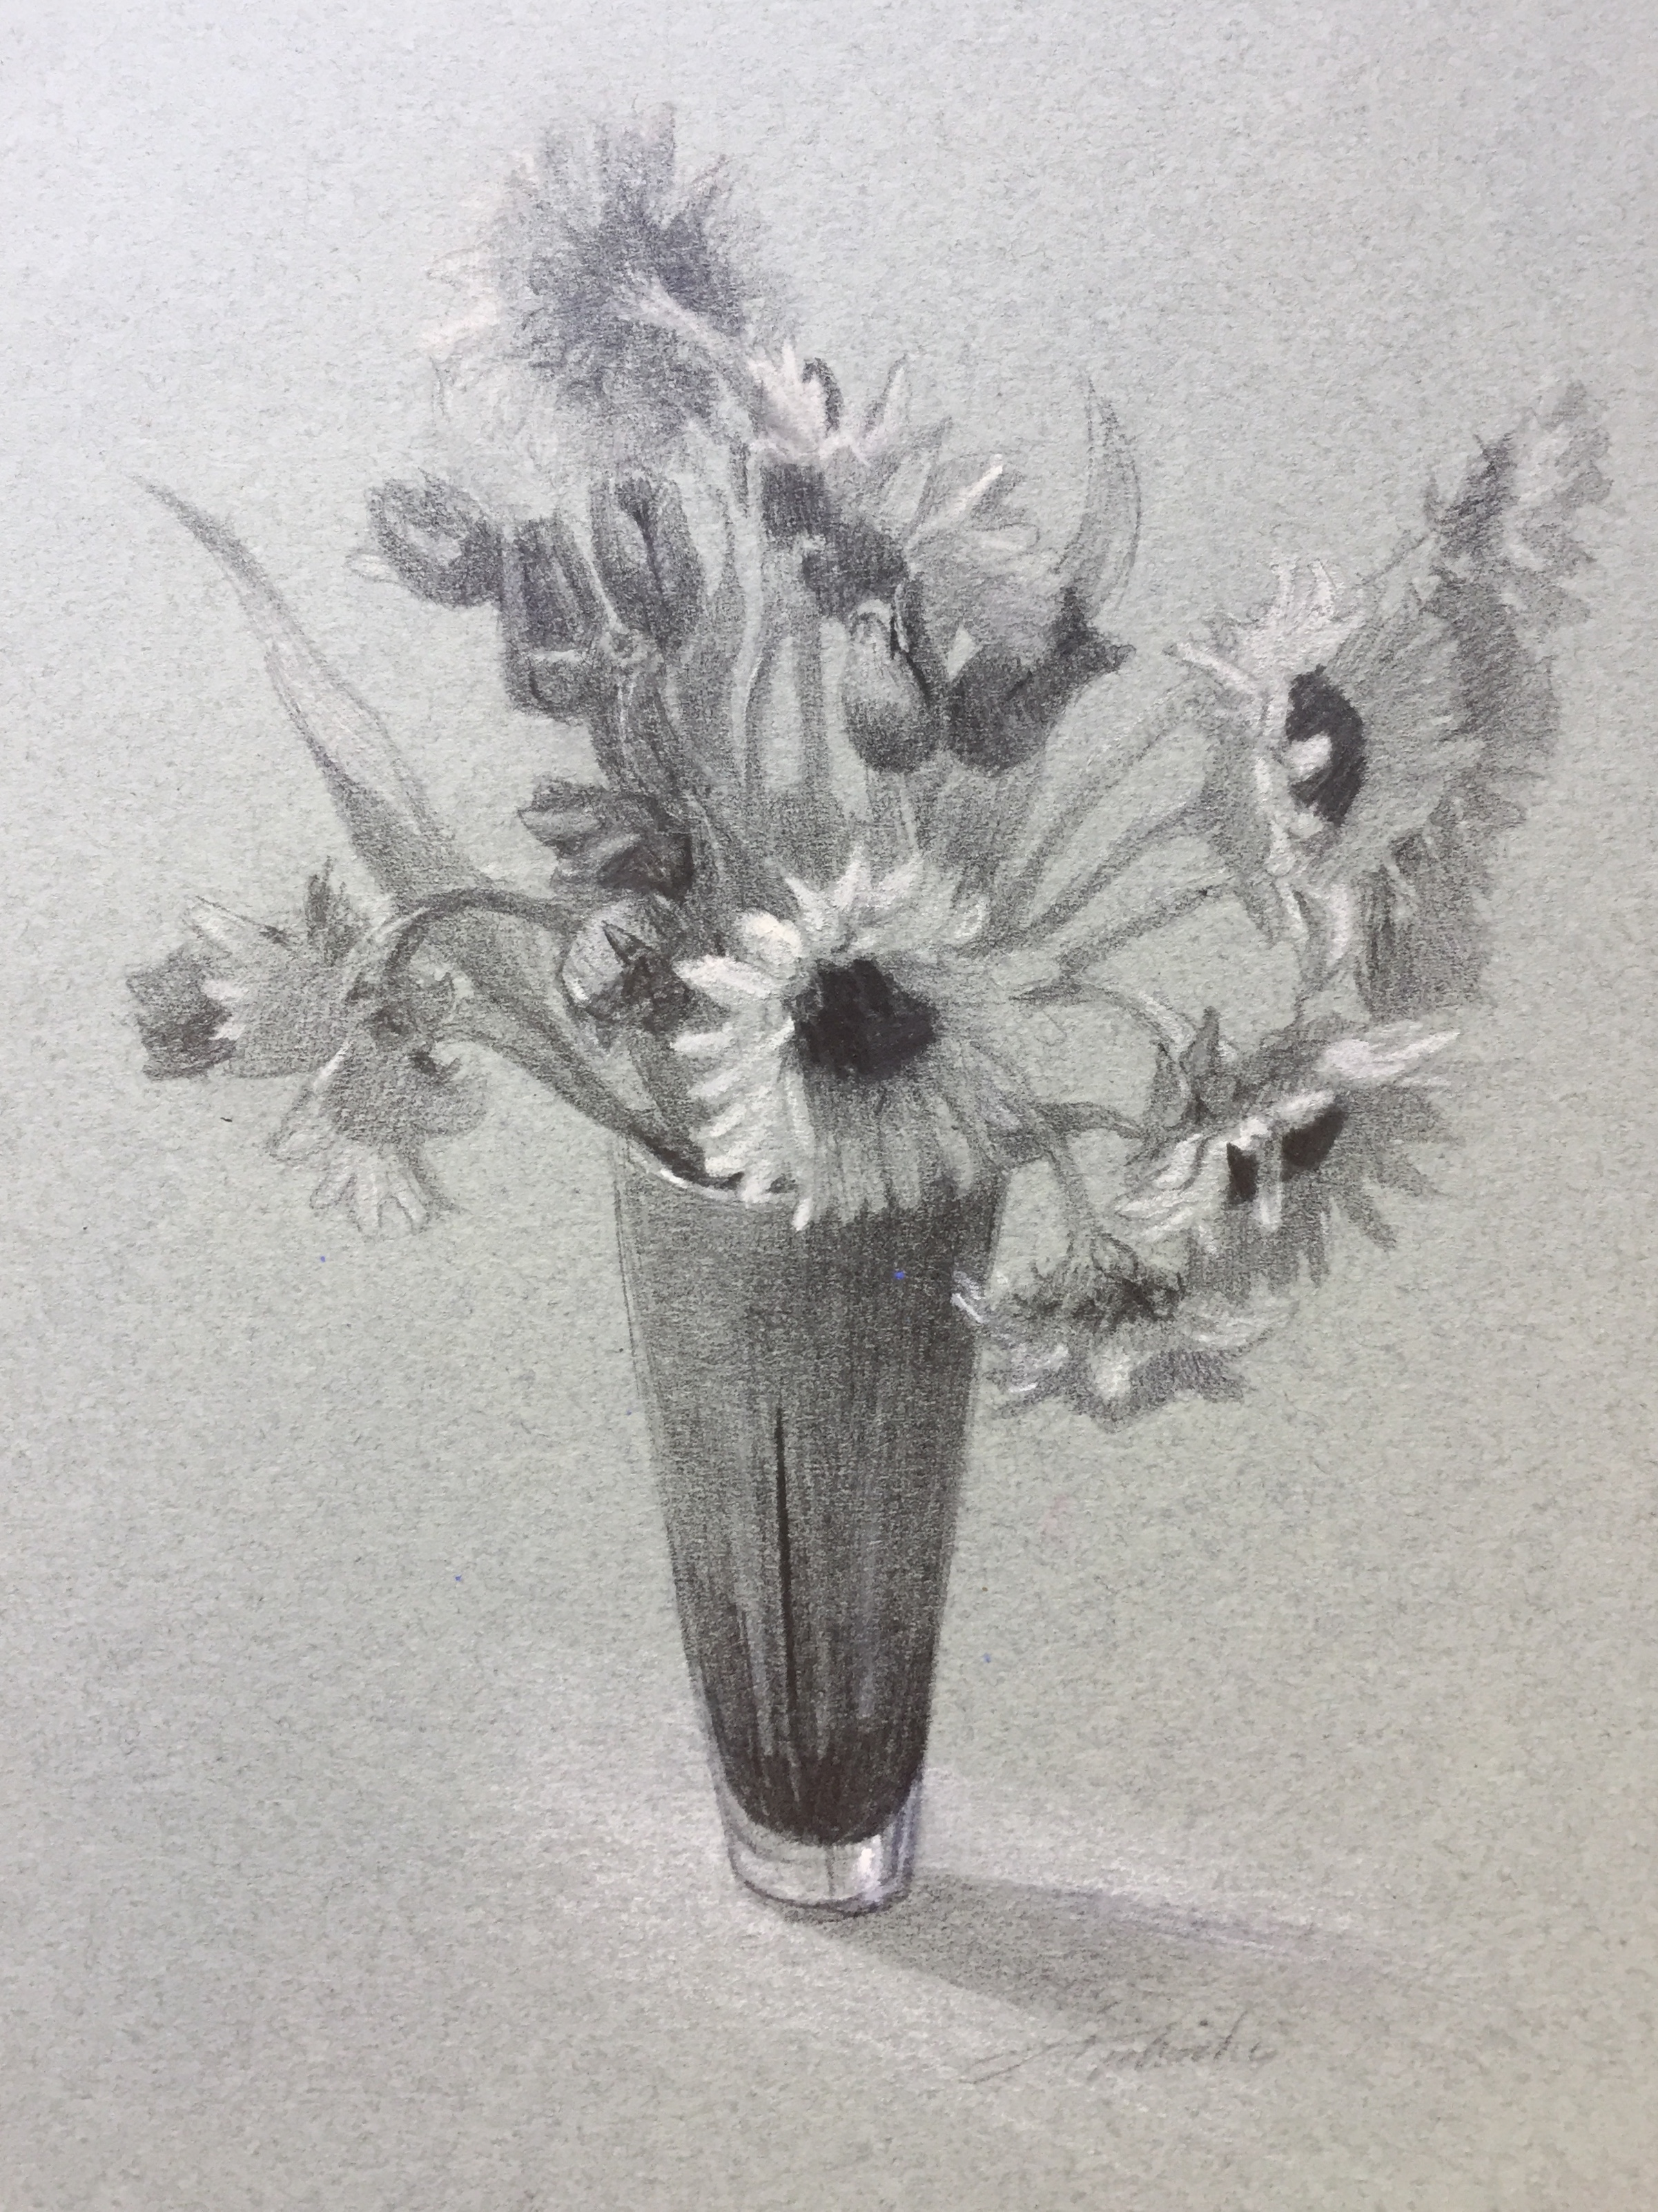 Drawing class now with Vicki Chelf at Sarasota Trading company on Tuesday evenings.